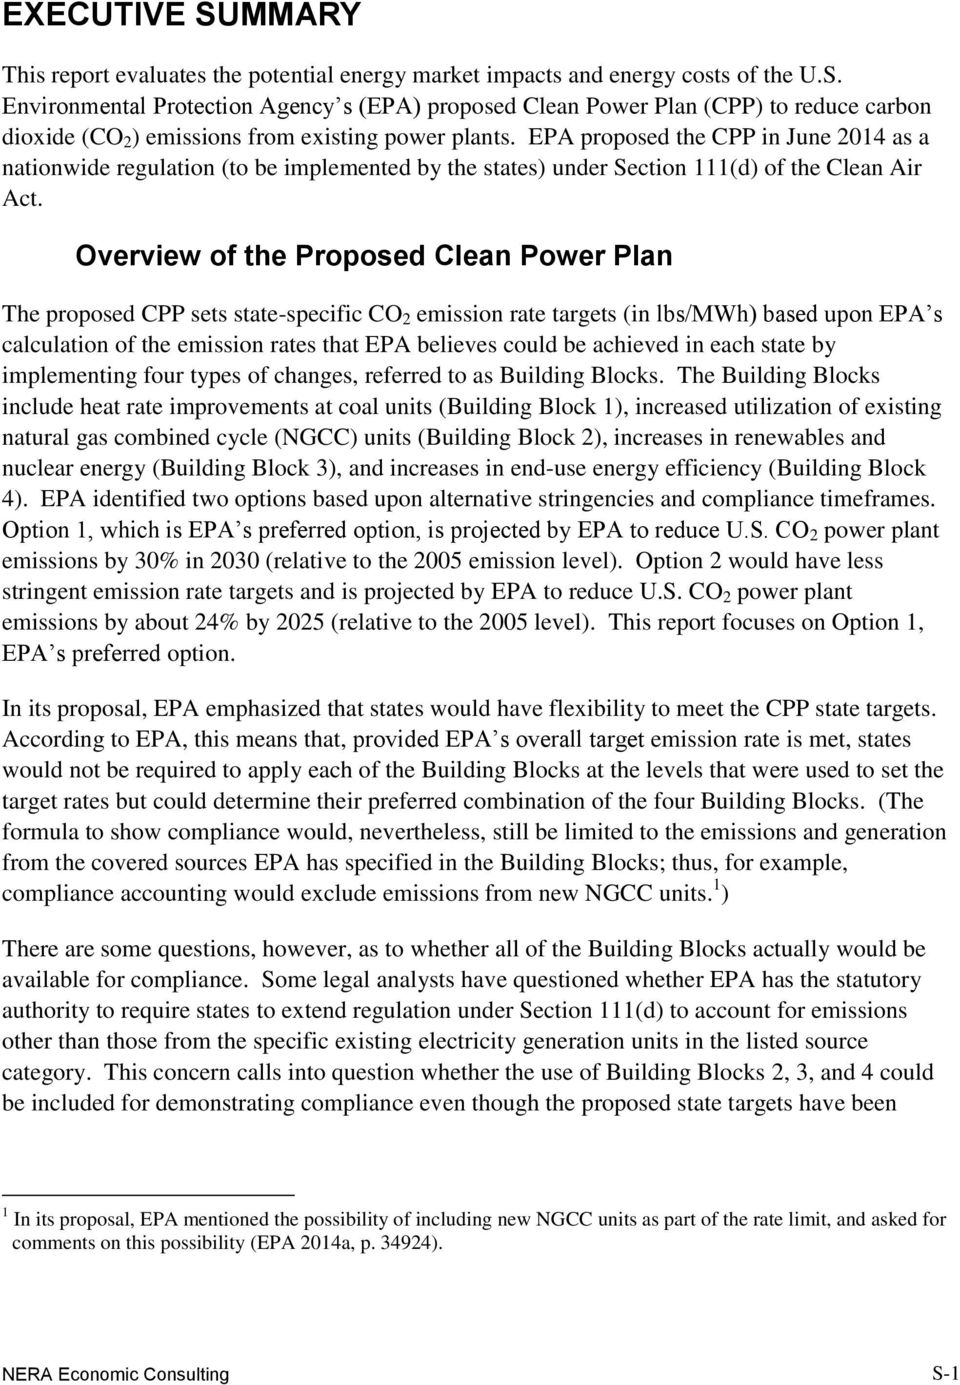 Overview of the Proposed Clean Power Plan The proposed CPP sets state-specific CO 2 emission rate targets (in lbs/mwh) based upon EPA s calculation of the emission rates that EPA believes could be